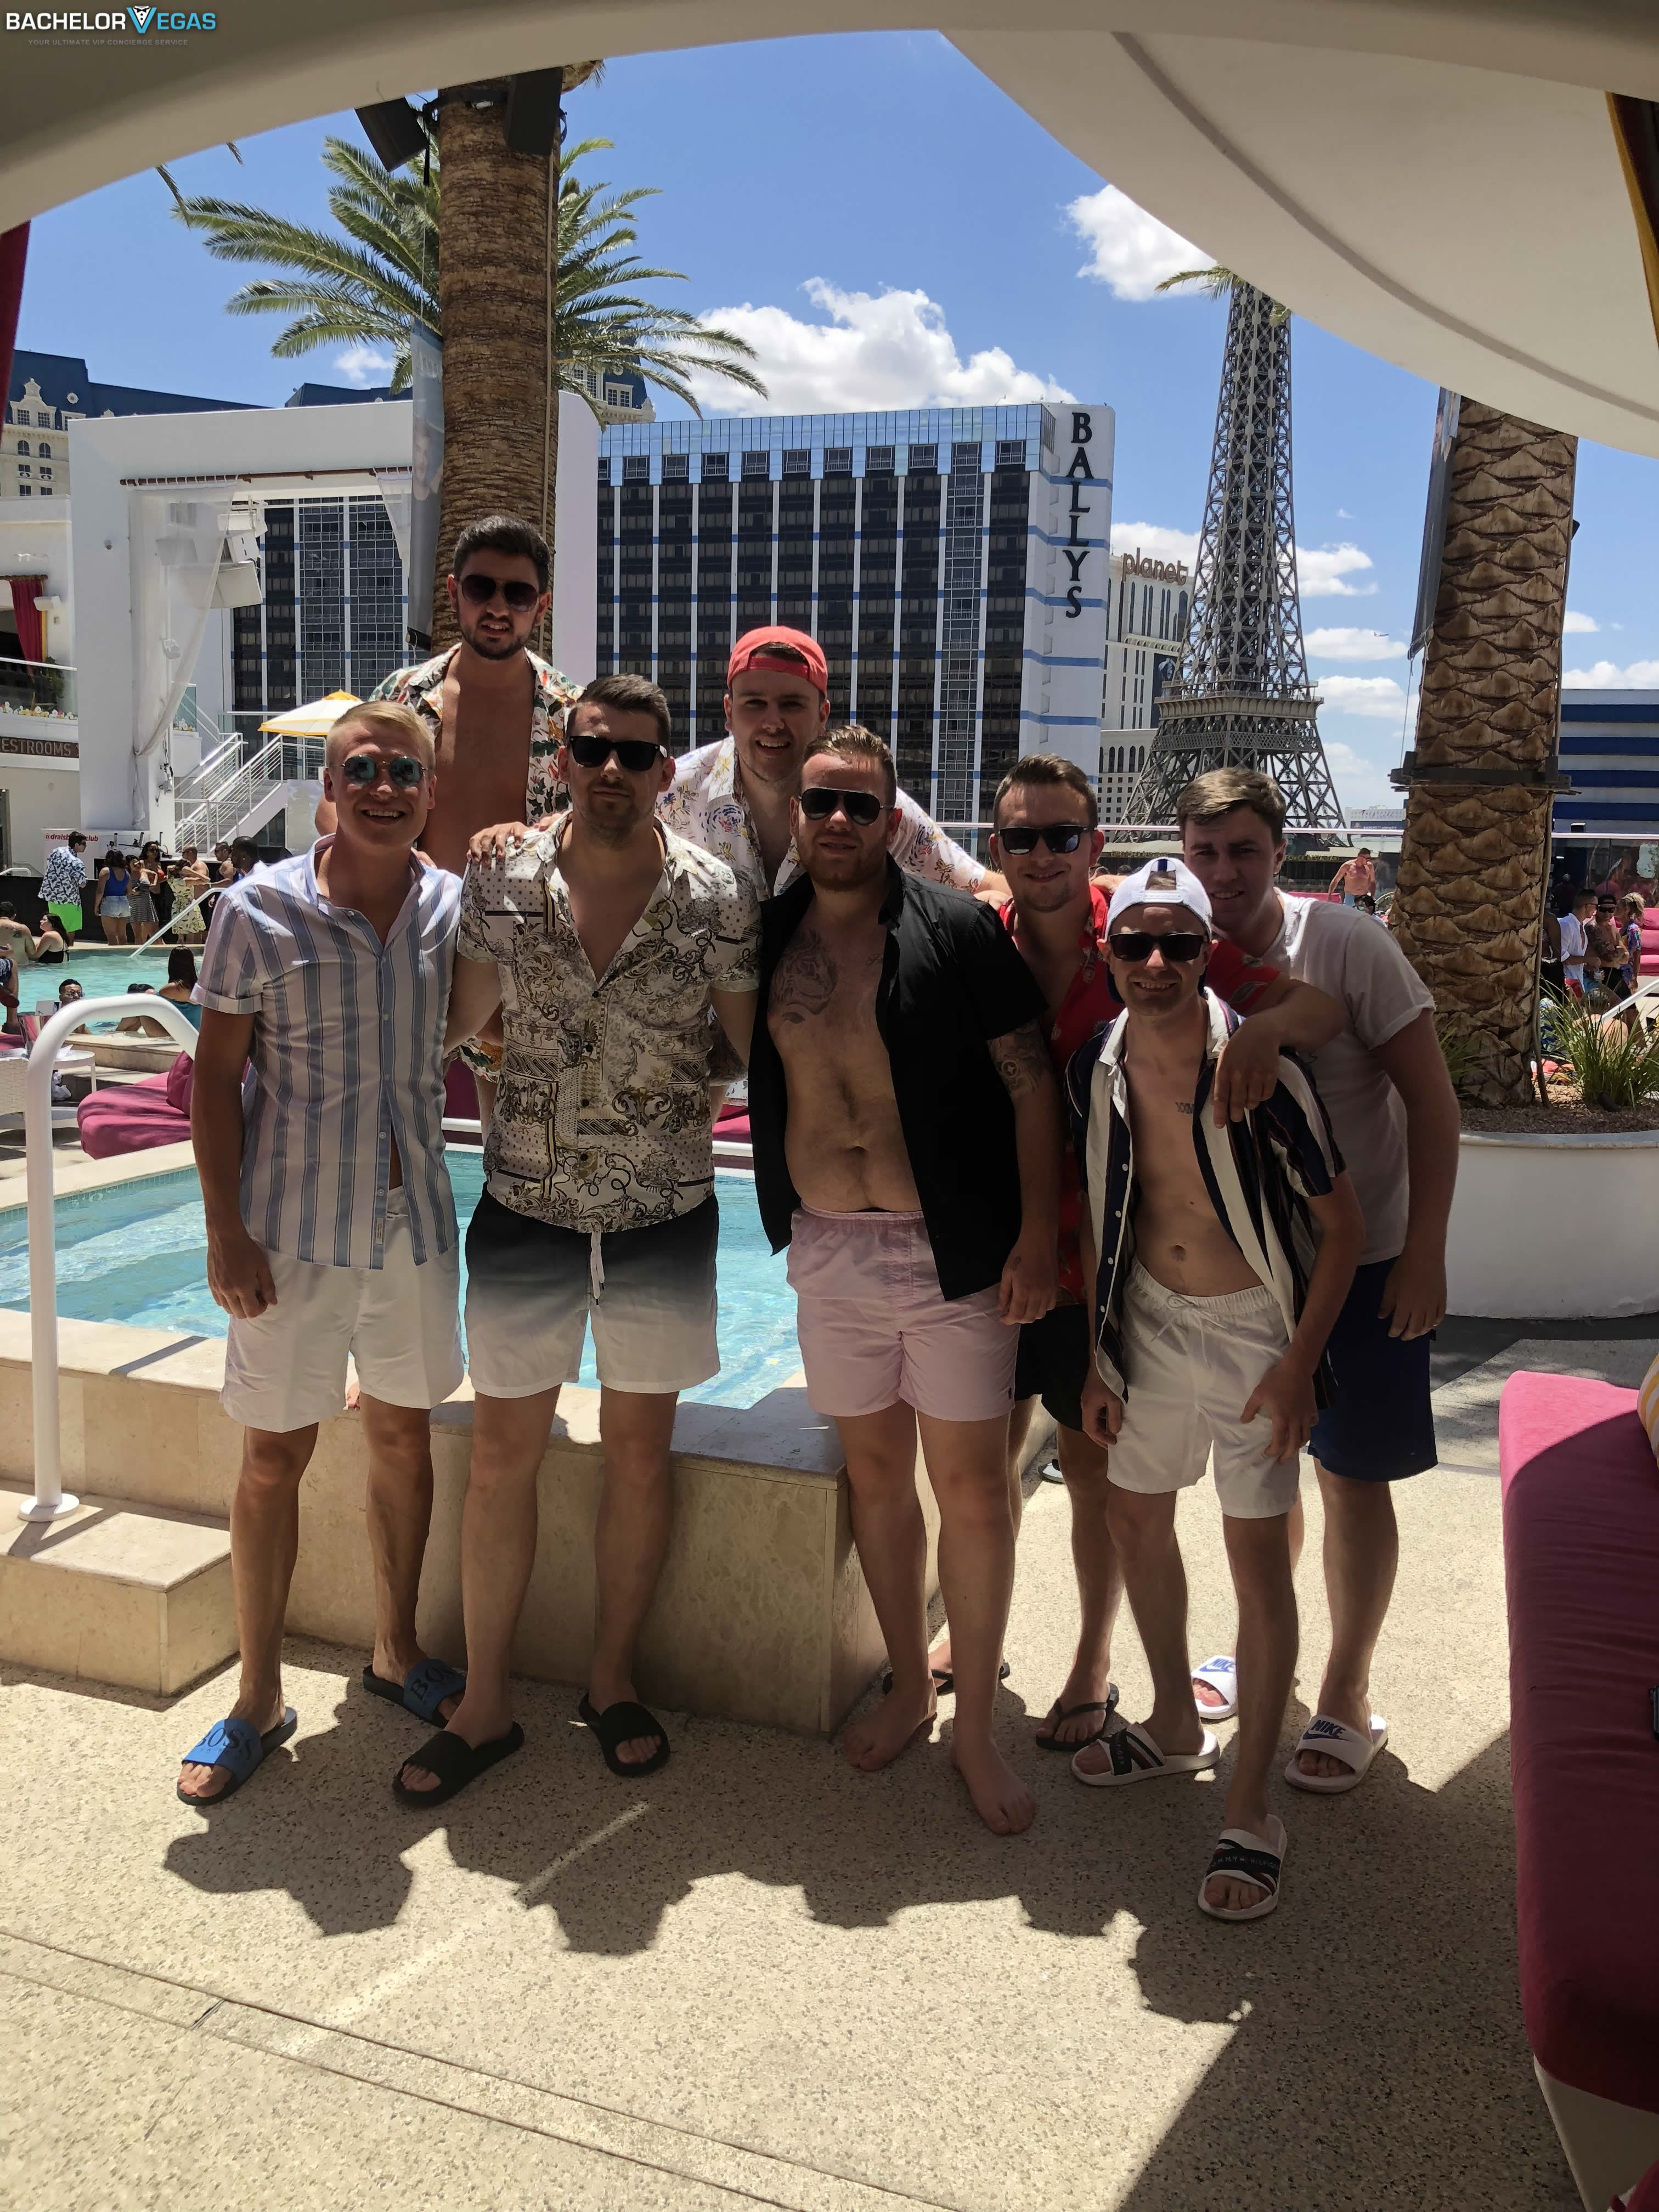 Las Vegas Is a Hotbed for COVID-19, According to